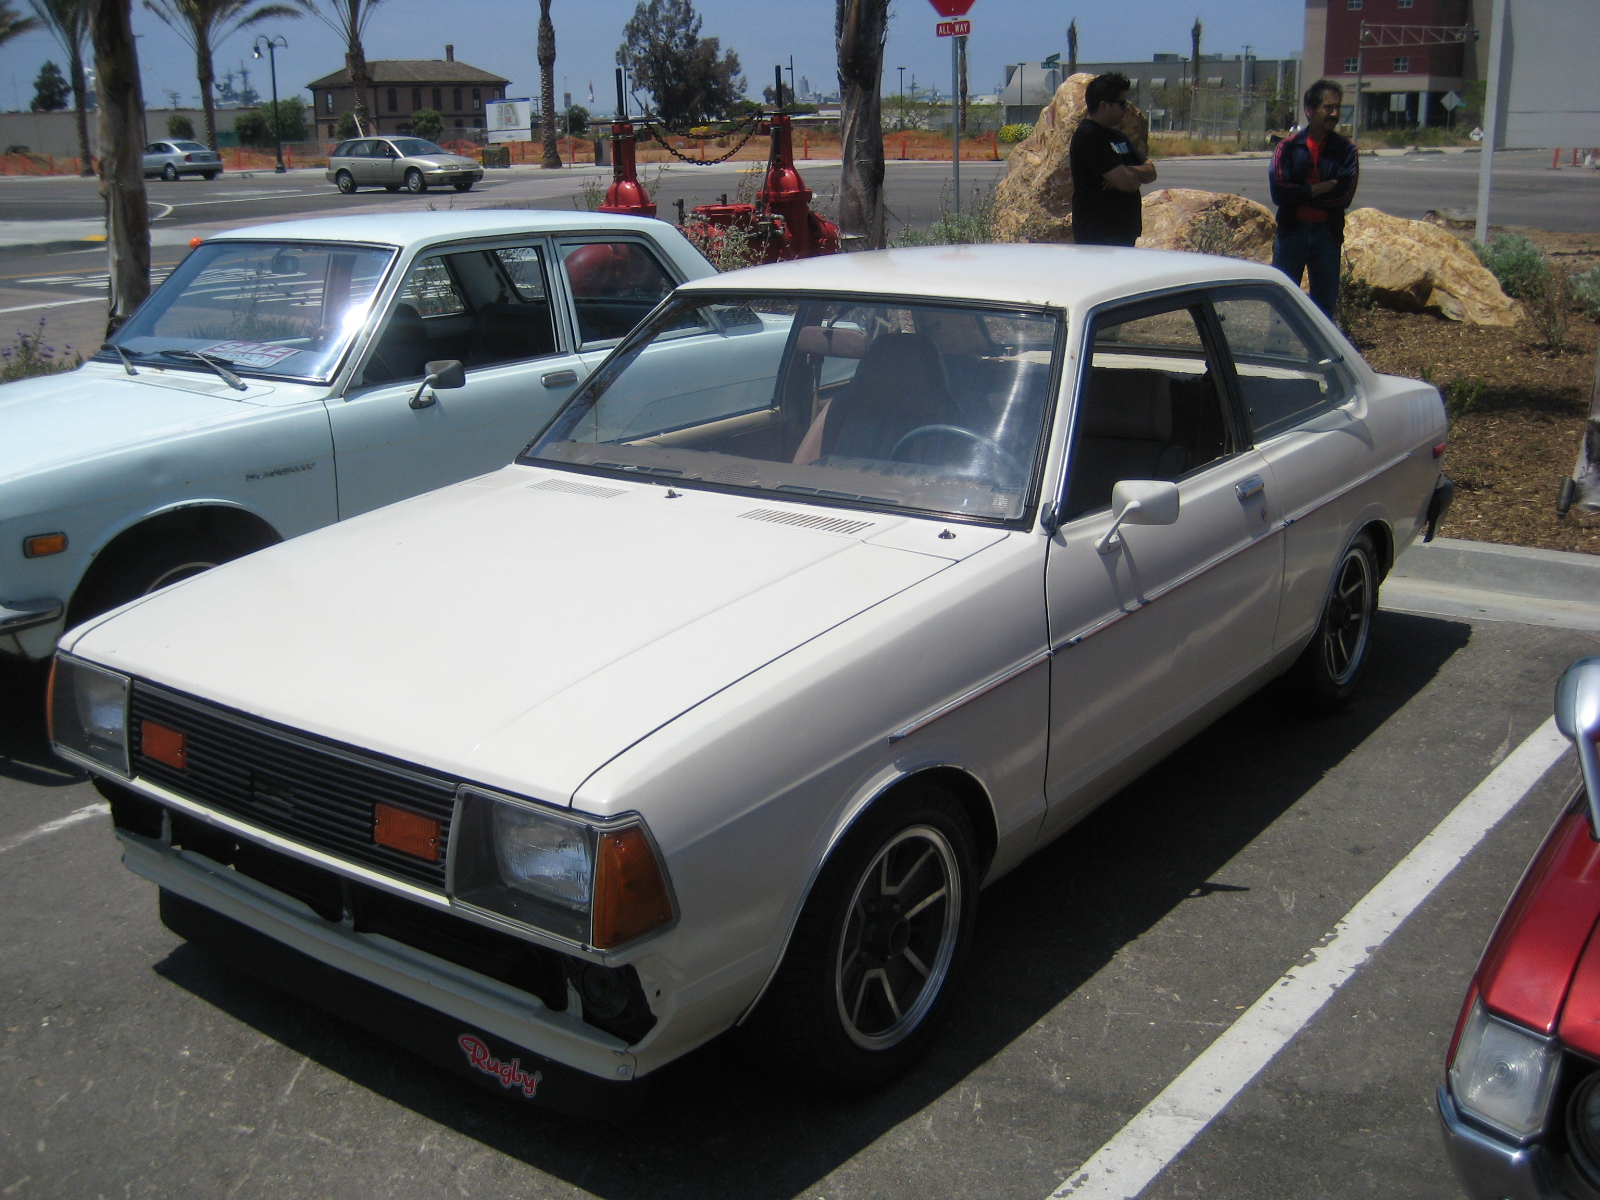 my first car the datsun 210 2 door coupe my didnt have those